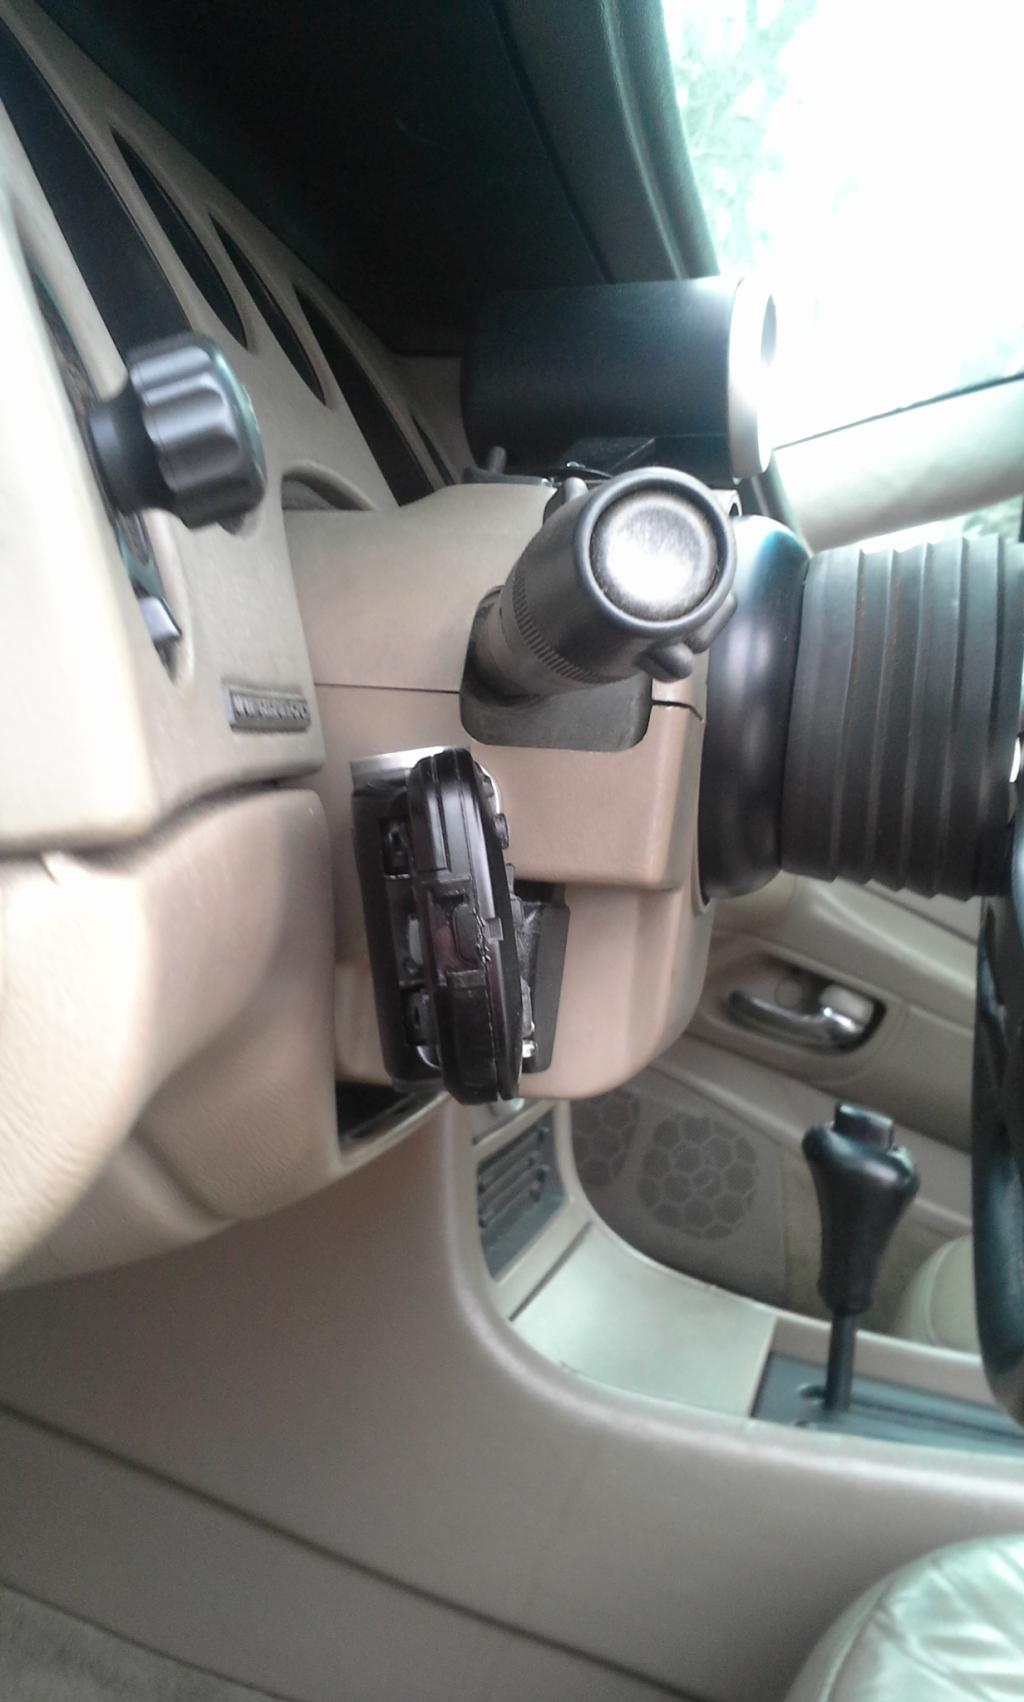 Steering wheel audio control 20150131_134529